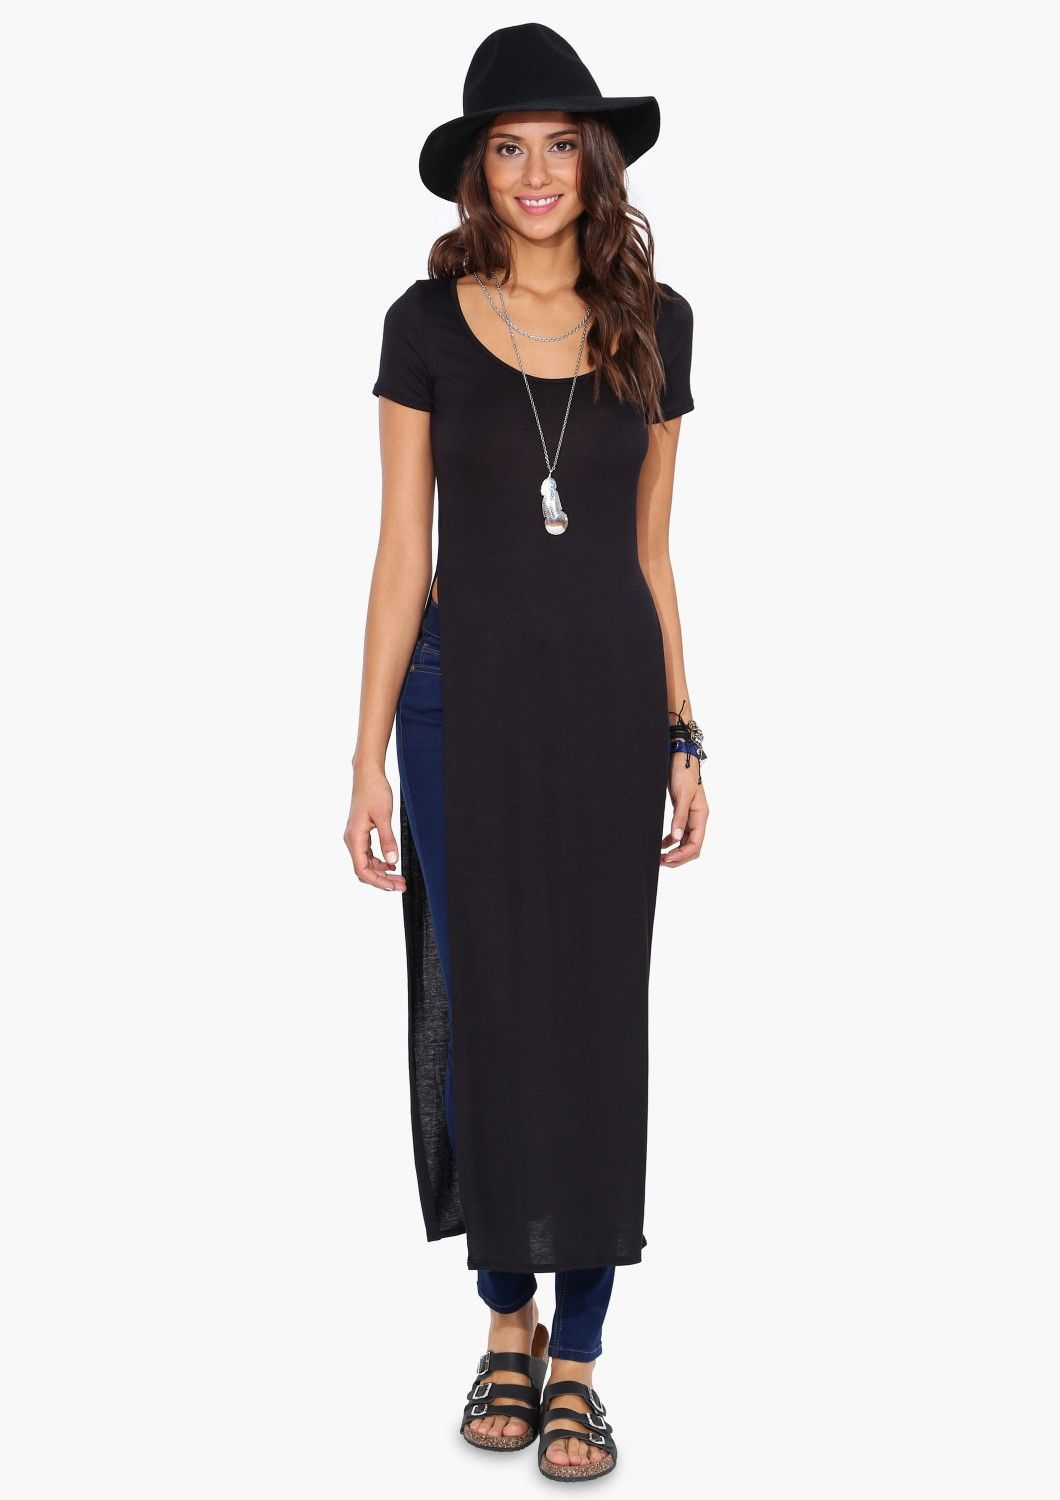 Long night shirt dress shop for long night shirt dress online